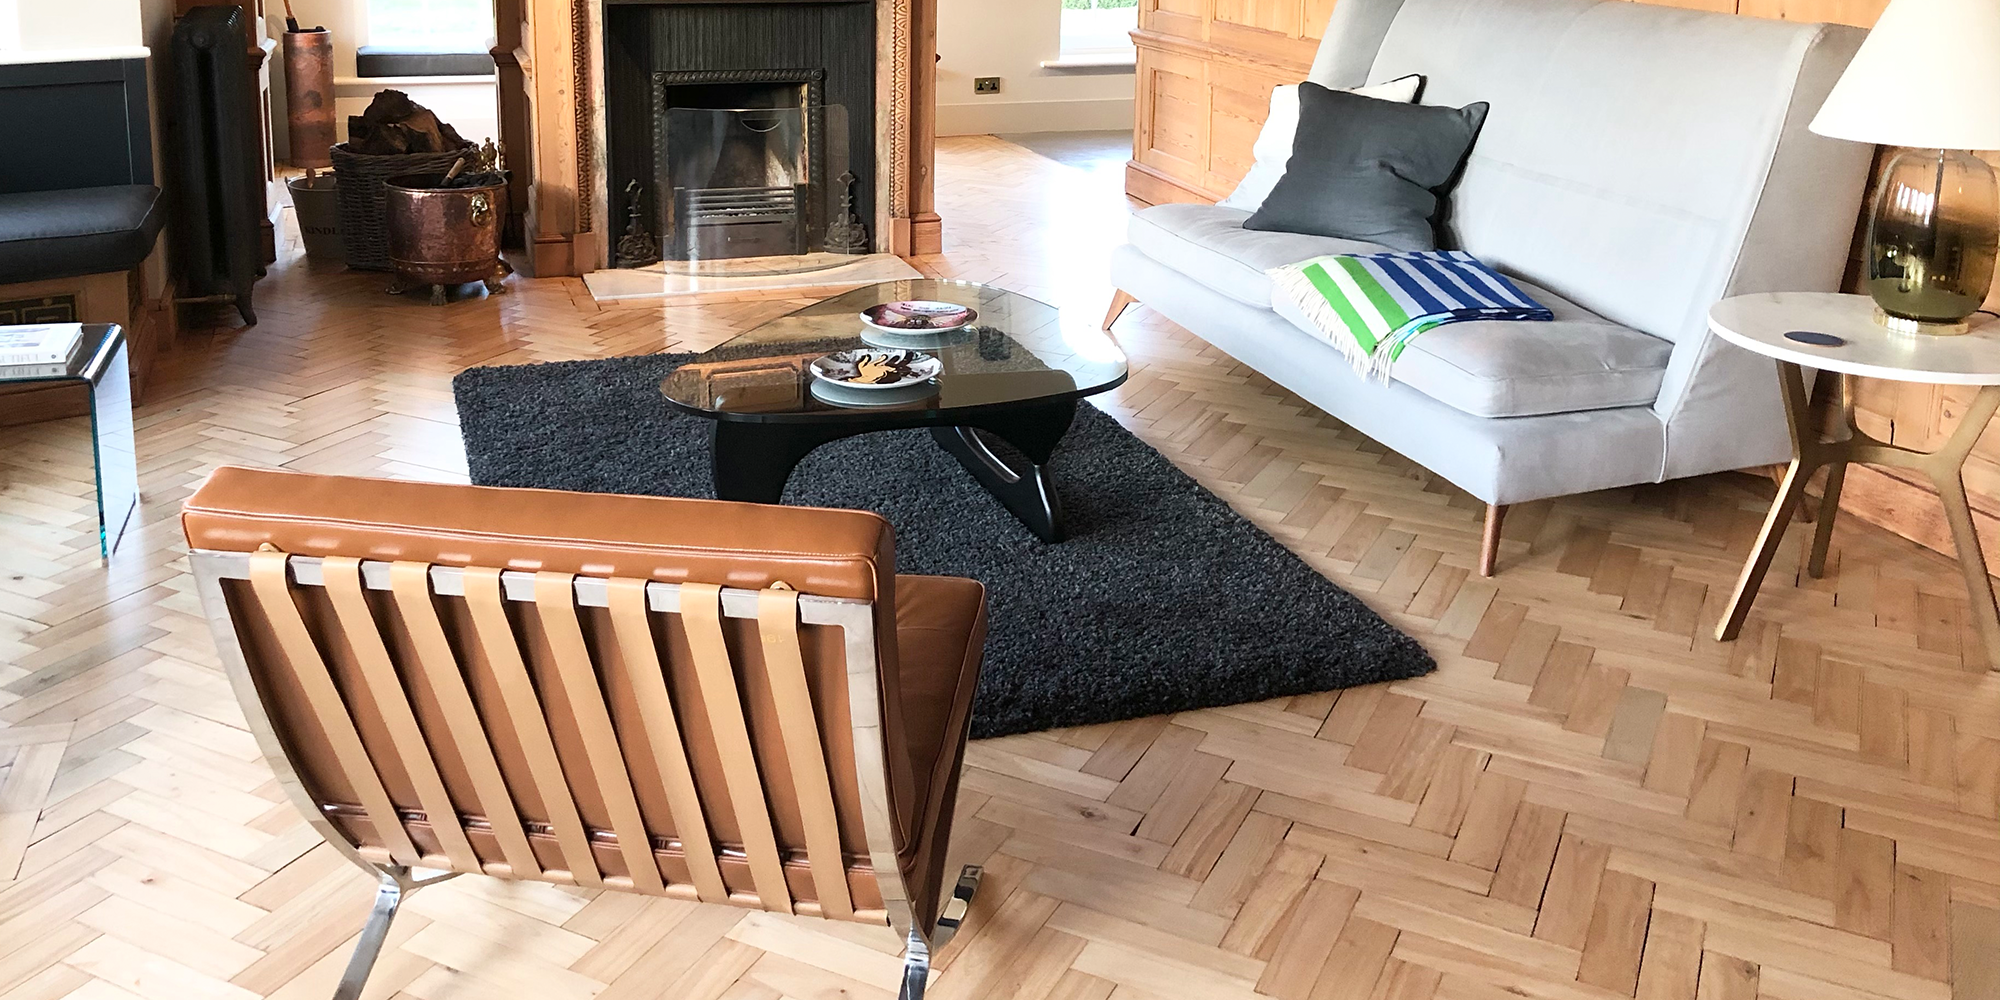 Living Room Featuring our Barcelona Chair & Noguchi Coffee Table